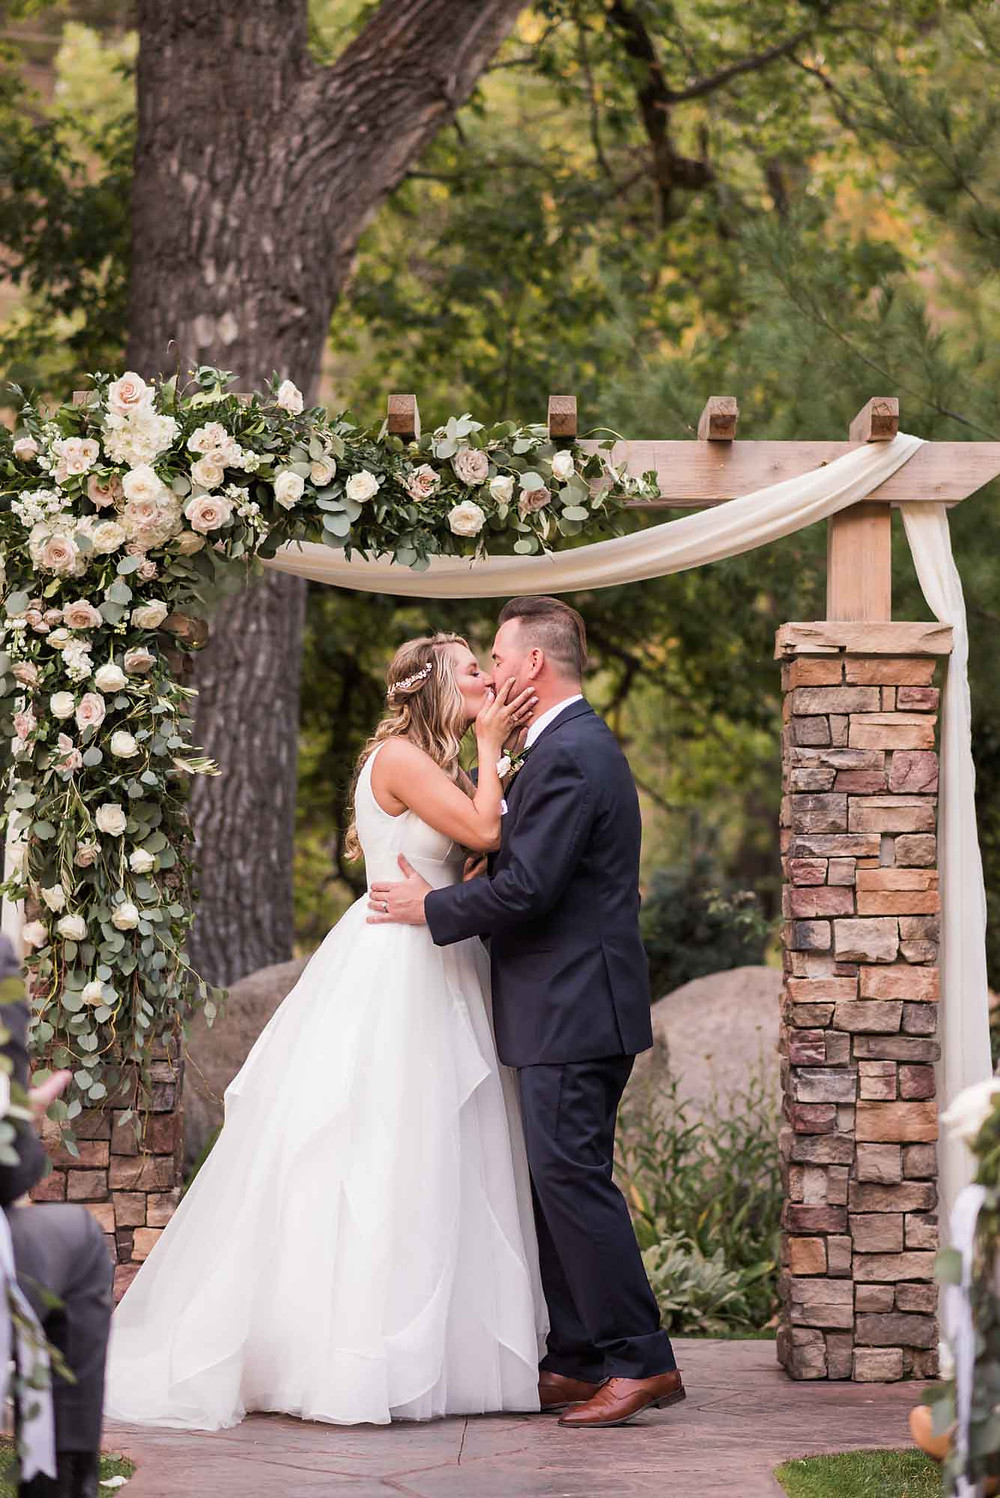 First Kiss at Wedgewood Boulder Under Painted Primrose Floral Arch